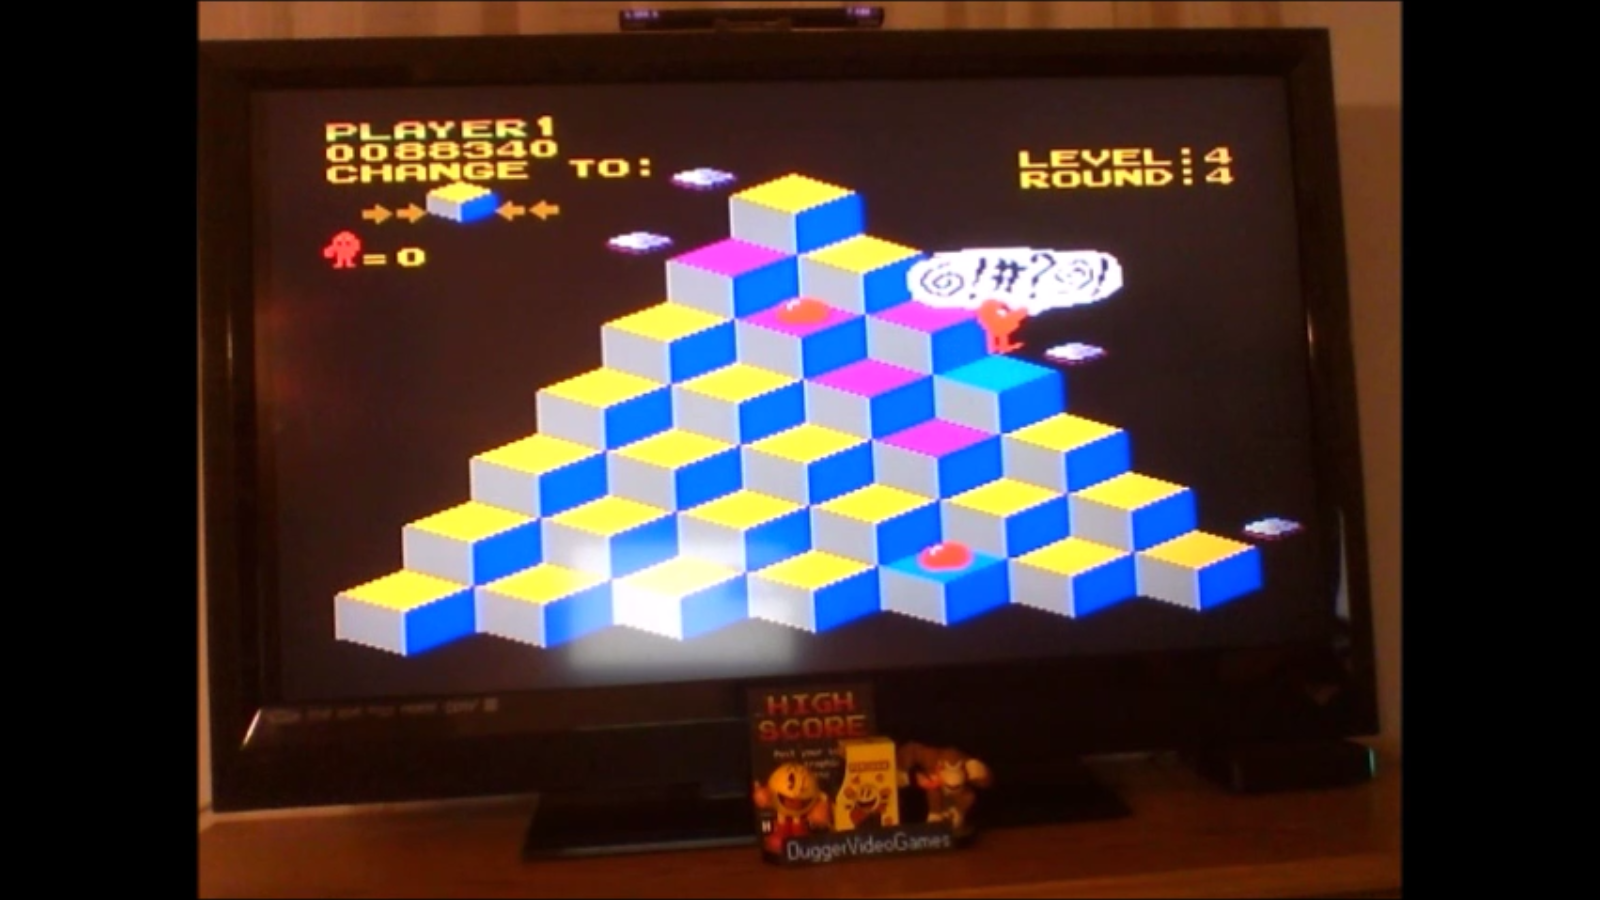 DuggerVideoGames: Q*Bert (NES/Famicom Emulated) 88,340 points on 2017-02-02 00:16:52